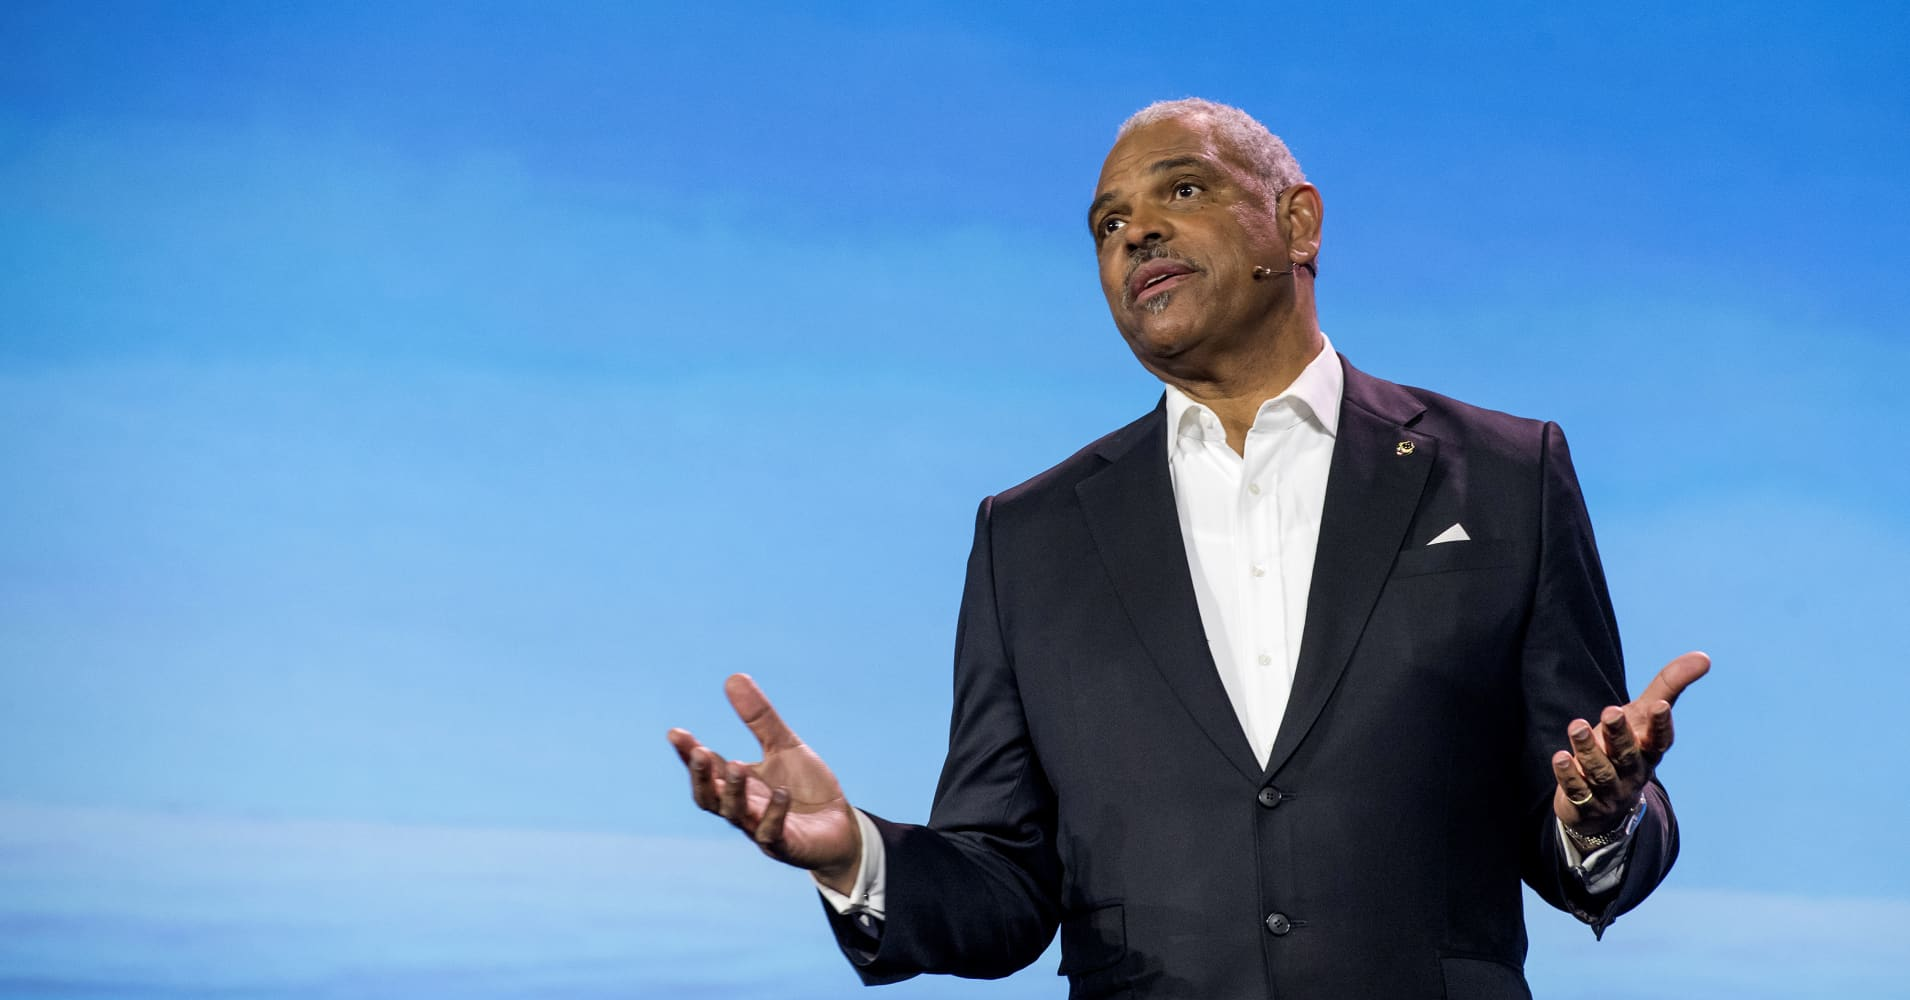 Arnold Donald, president and chief executive officer of Carnival Corp., speaks during a keynote event at the 2017 Consumer Electronics Show (CES) in Las Vegas, Nevada, U.S., on Thursday, Jan. 5, 2017.